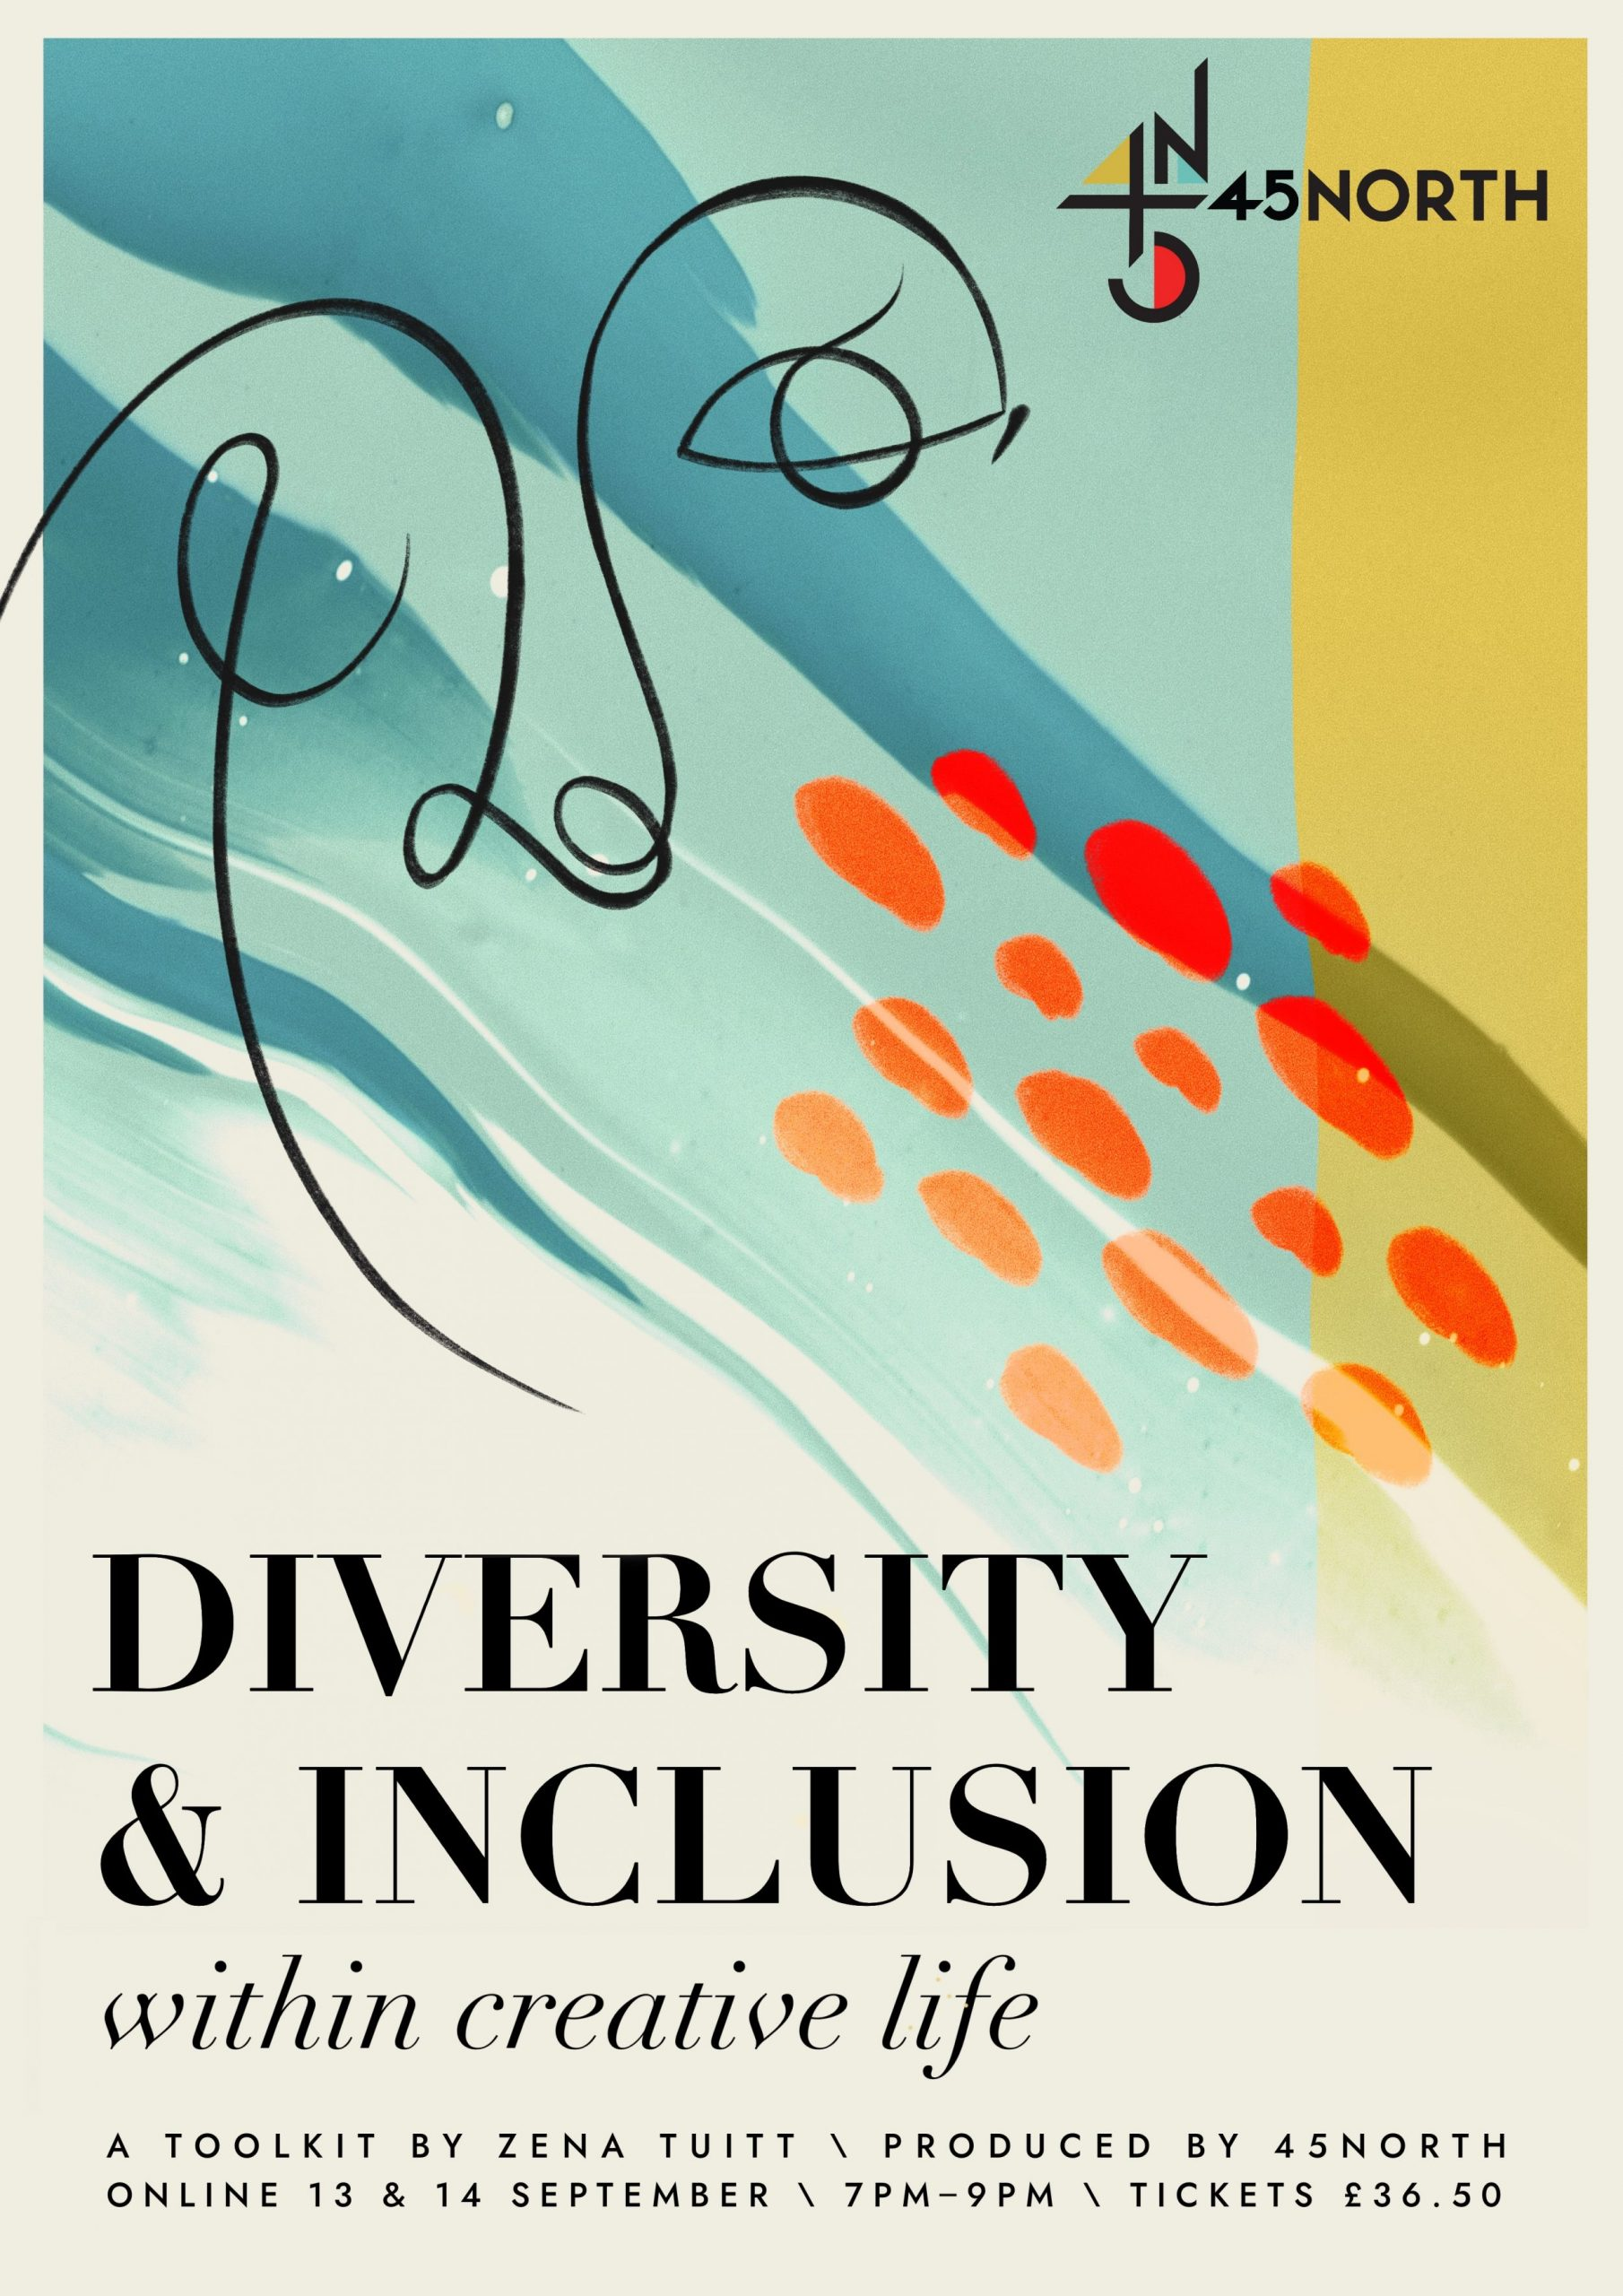 Diversity and Inclusion within Creative Life